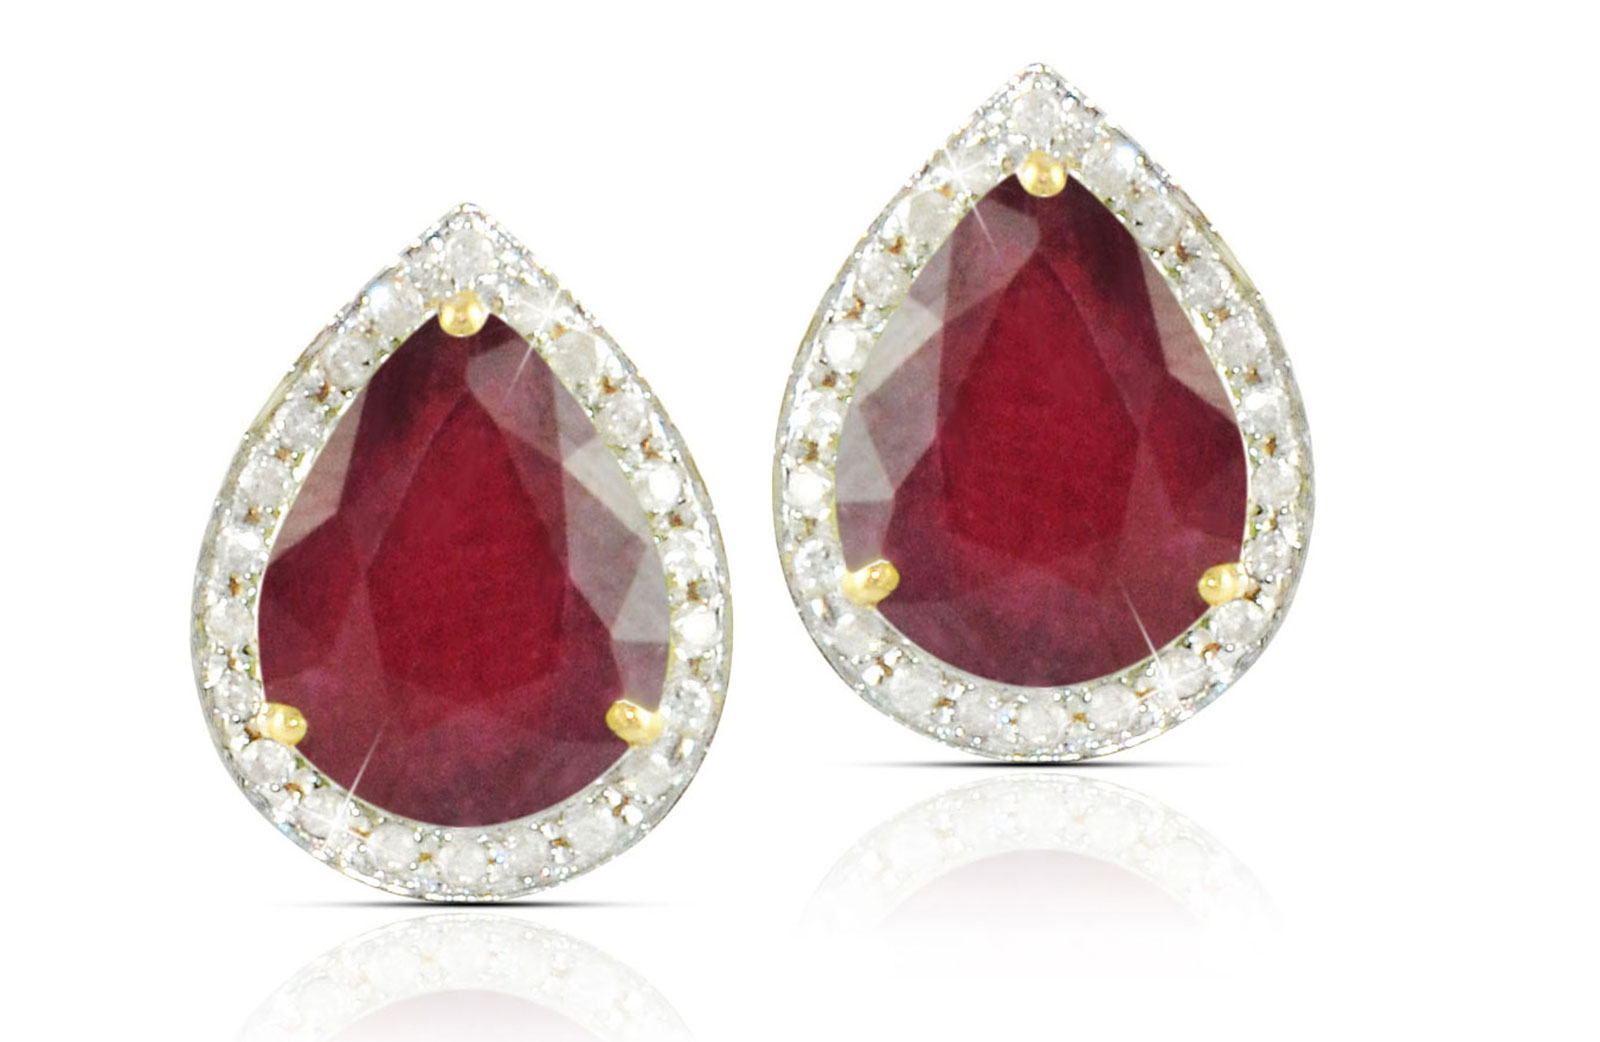 Vera Perla 18k  Gold 10mm Genuine Drop  Cut Ruby 0.24Ct Genuine Diamonds earrings